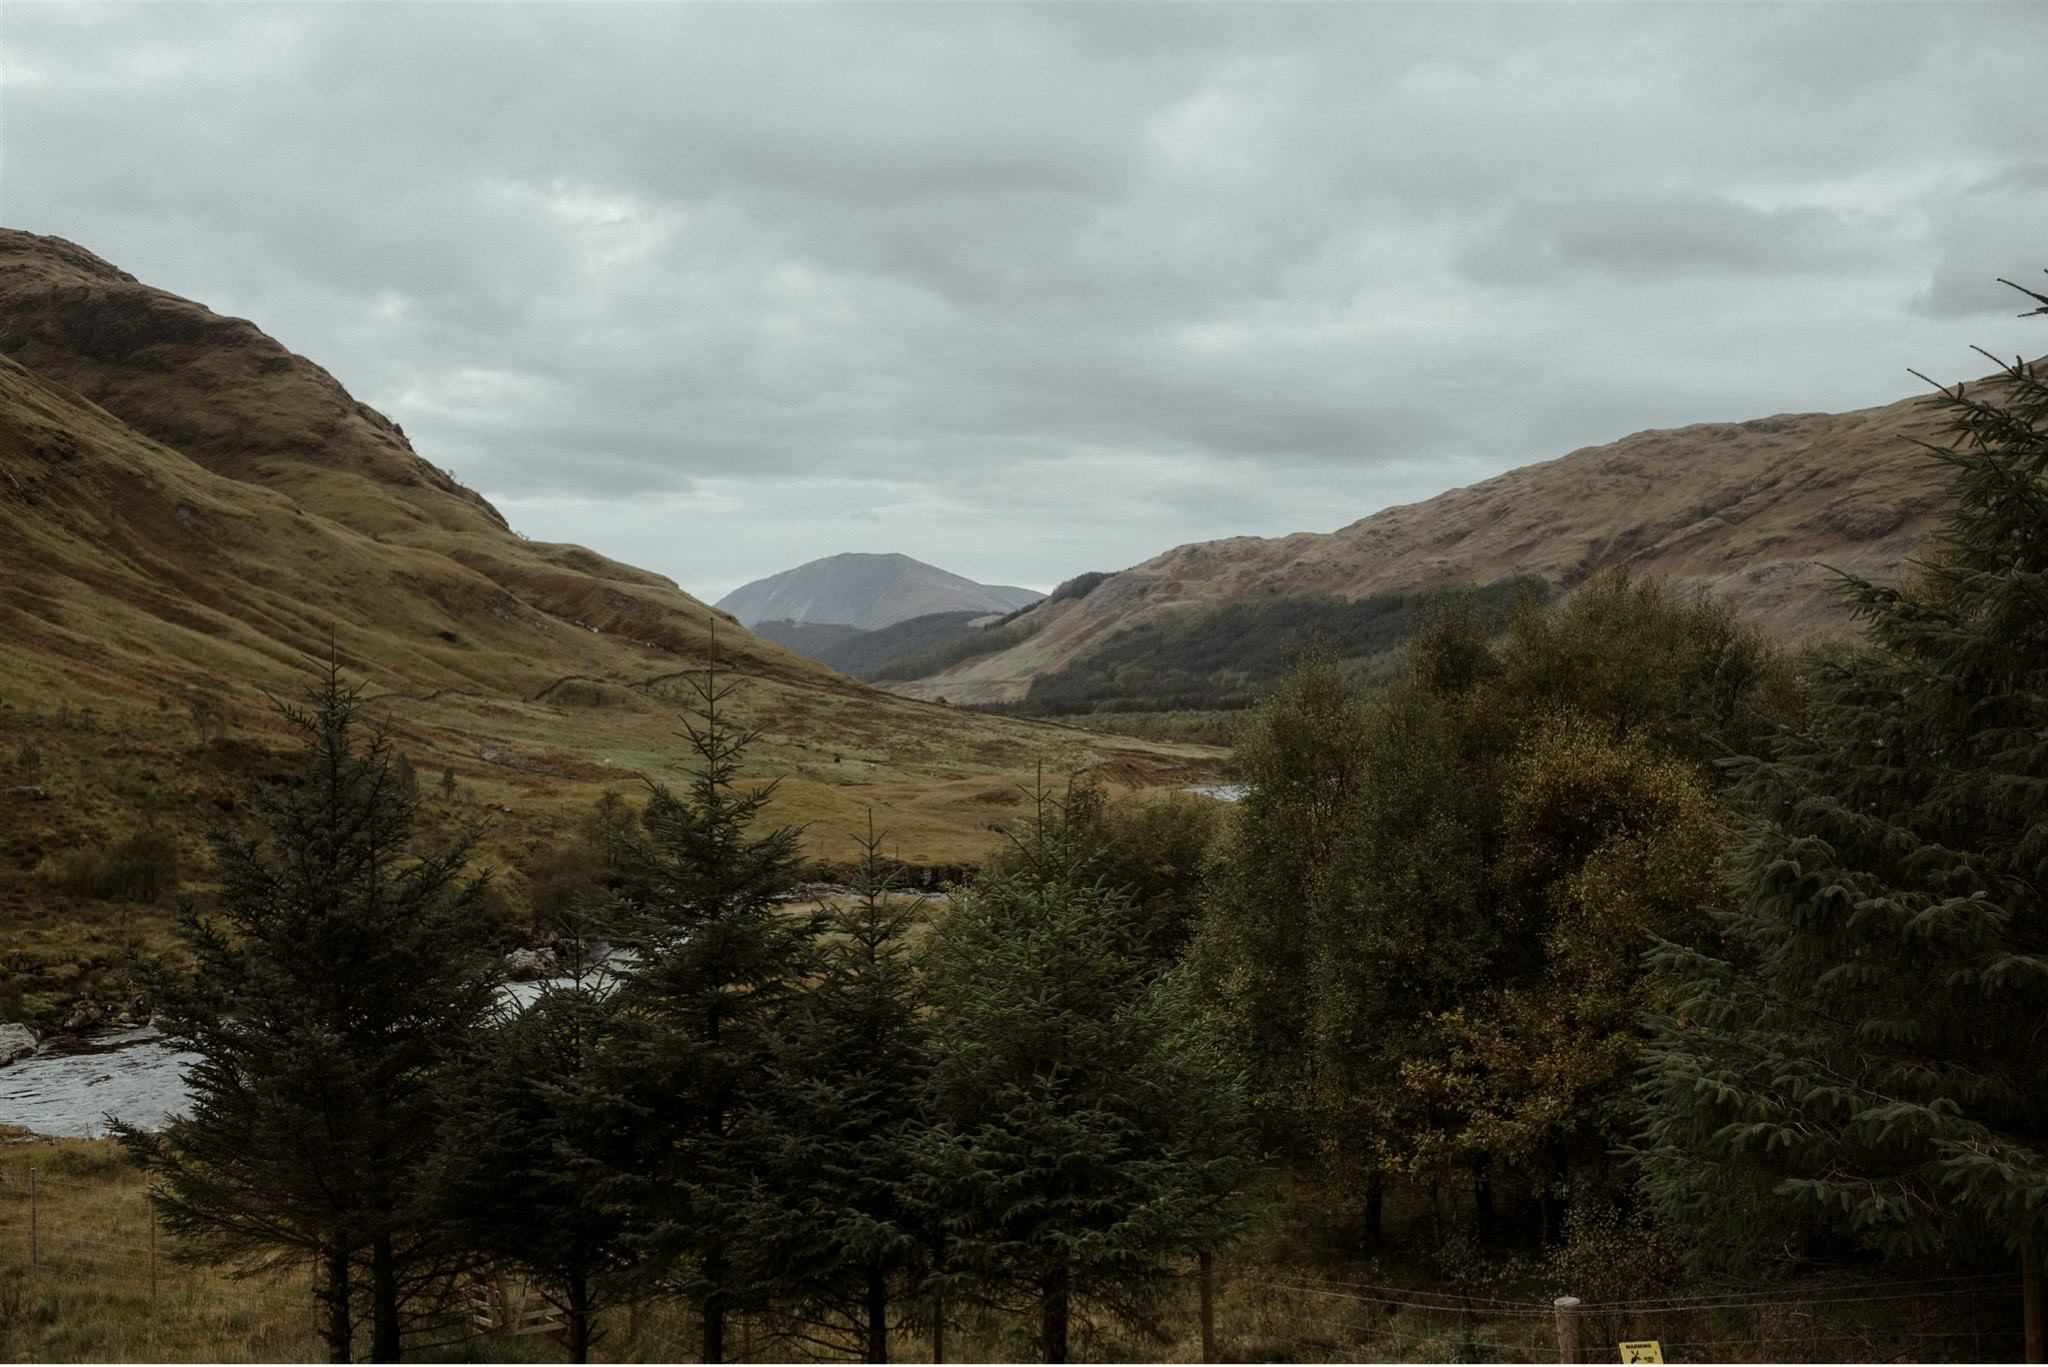 Mountainous scenery in Glen Etive in Glencoe a romantic elopement location in the Scottish Highlands